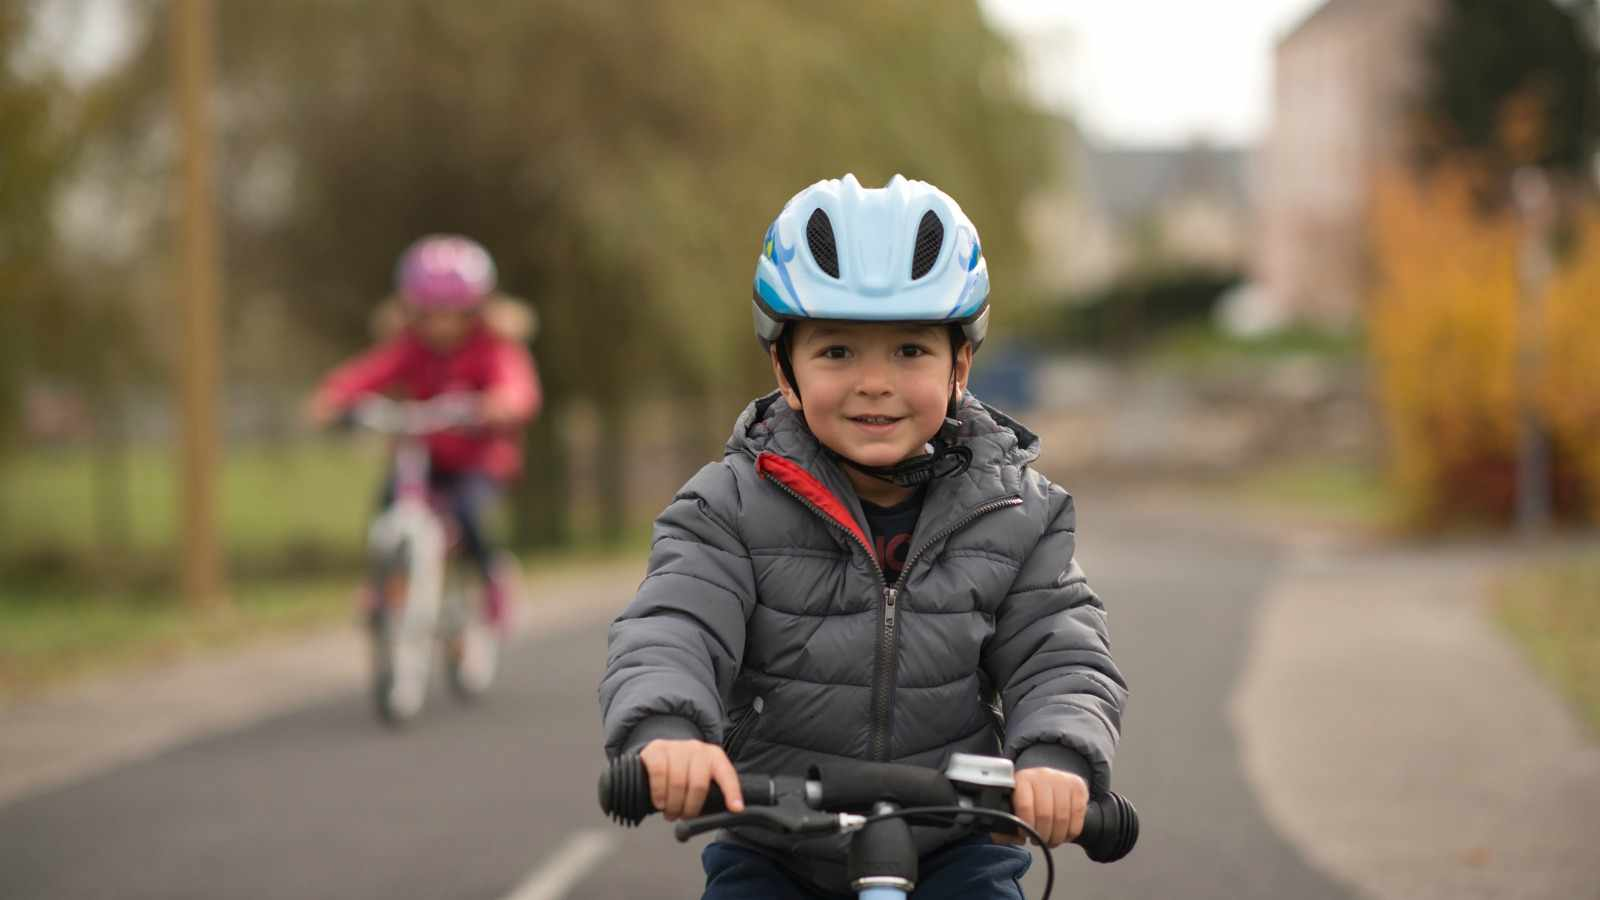 All children under 12 will have to wear bike helmets in France from March 2017